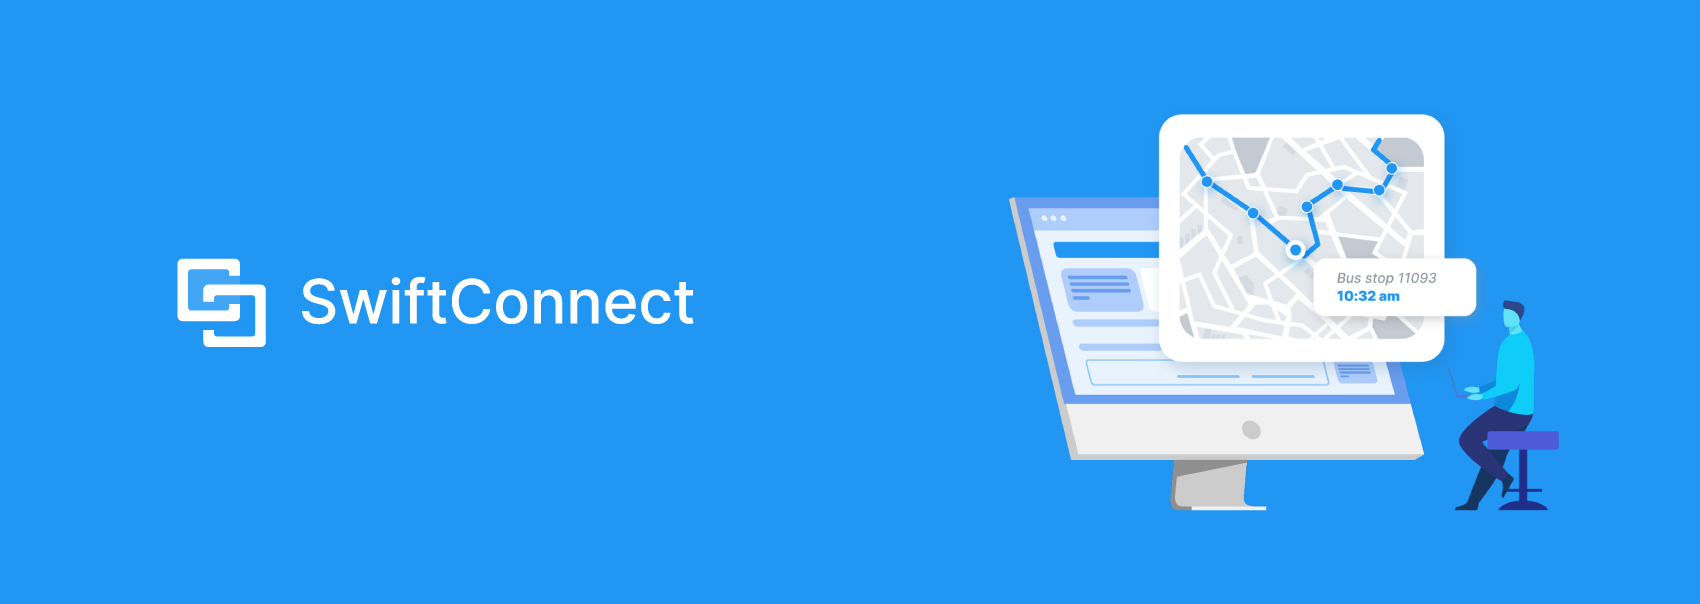 SwiftConnect